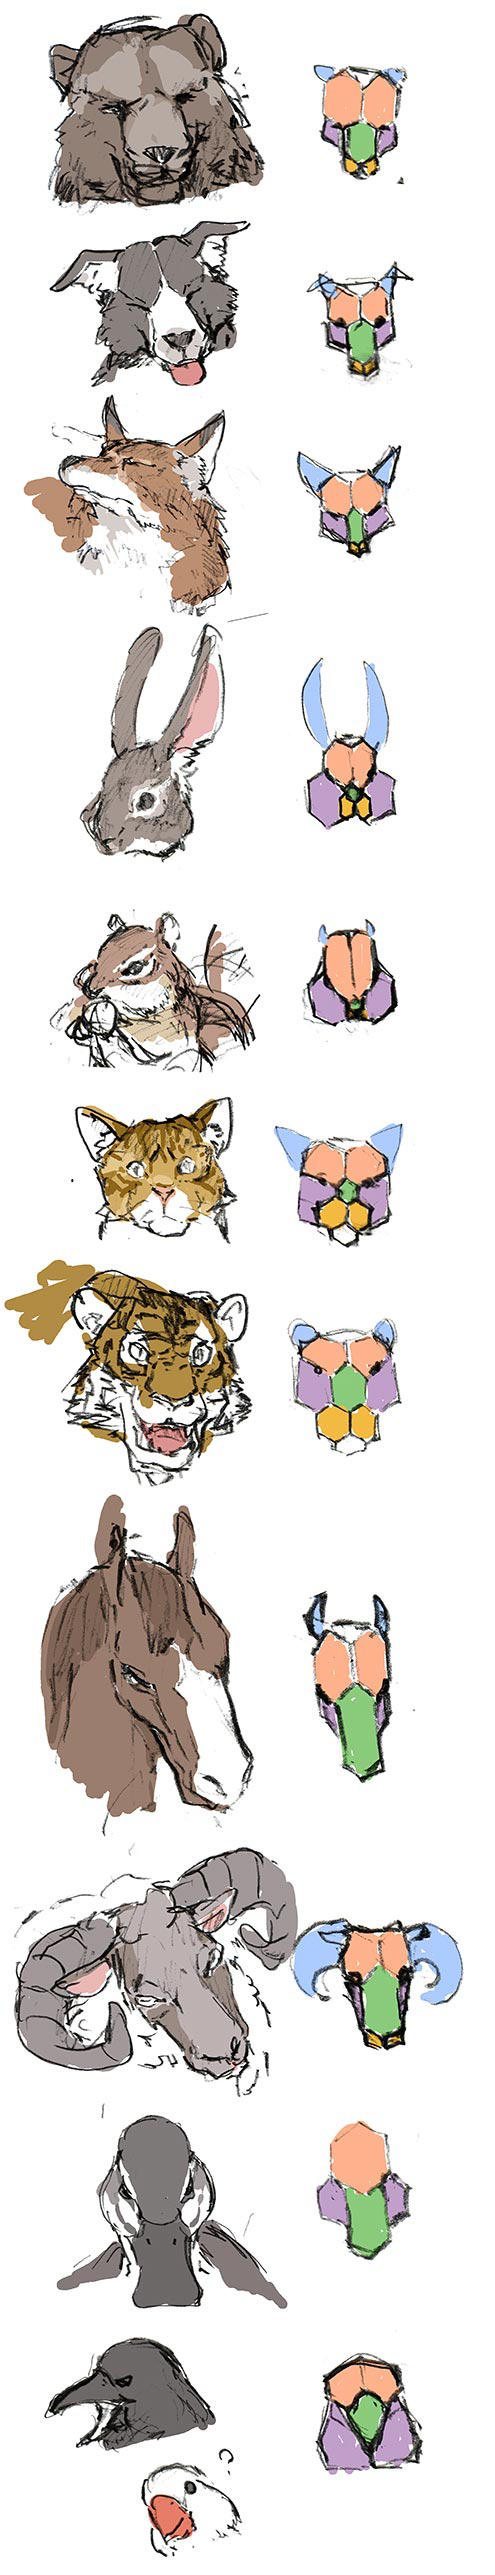 sketch-study with animal face by hira-geco